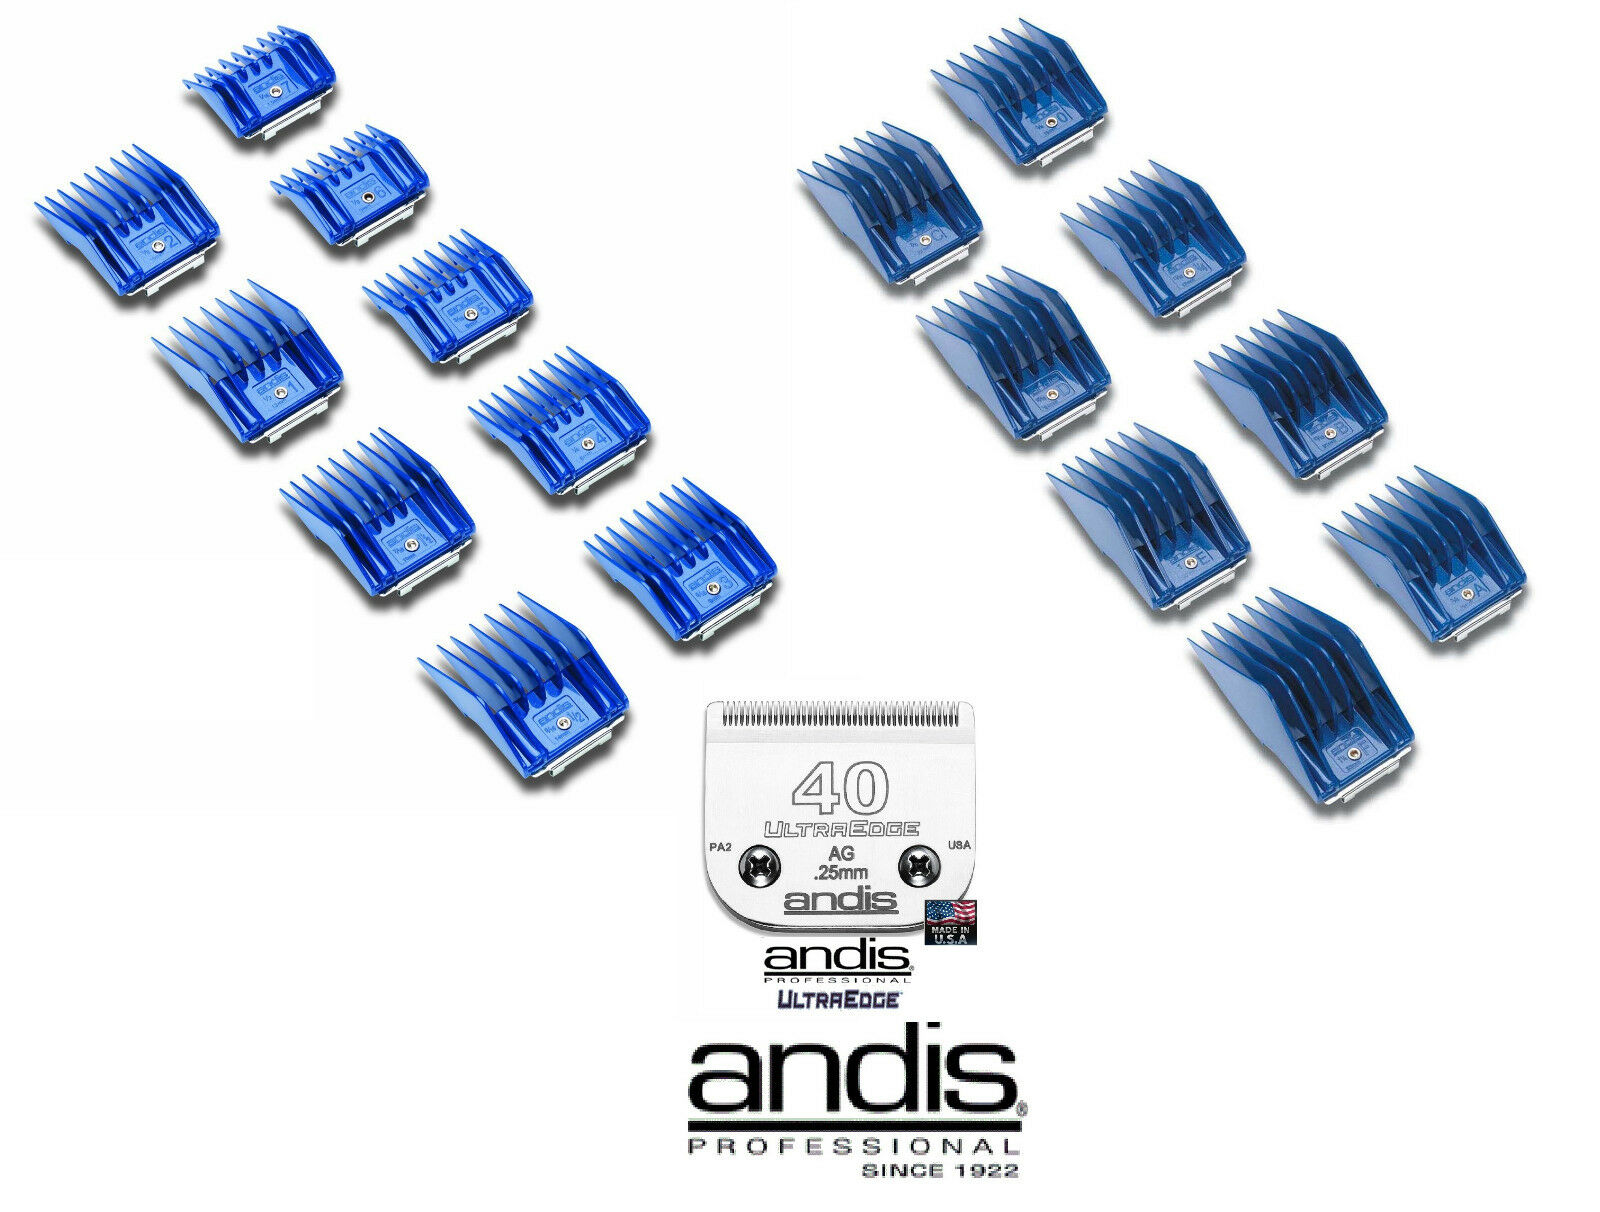 Andis AG BG CLIP ON GUIDE Attachment Combs 17pc set&40 UltraEdge Clipper Blade